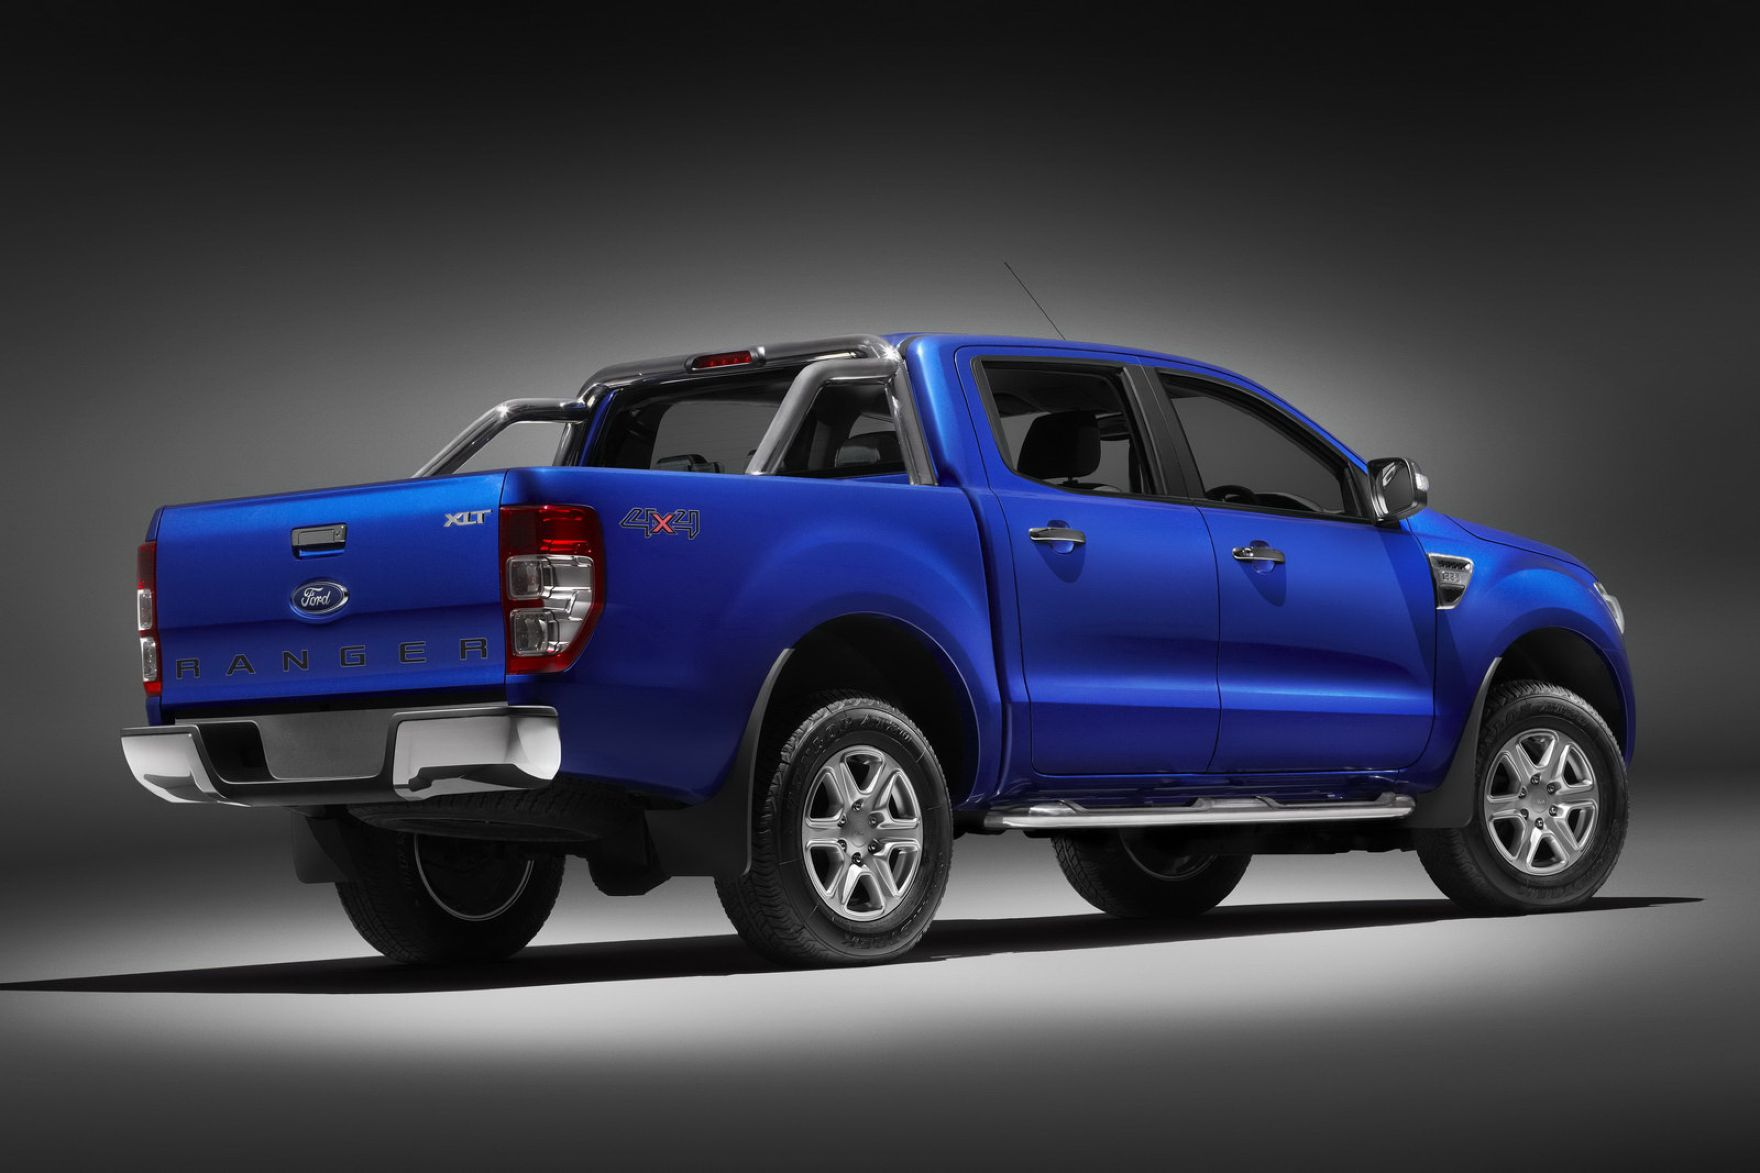 Ford Ranger Pickup Trucks New Wallpaper